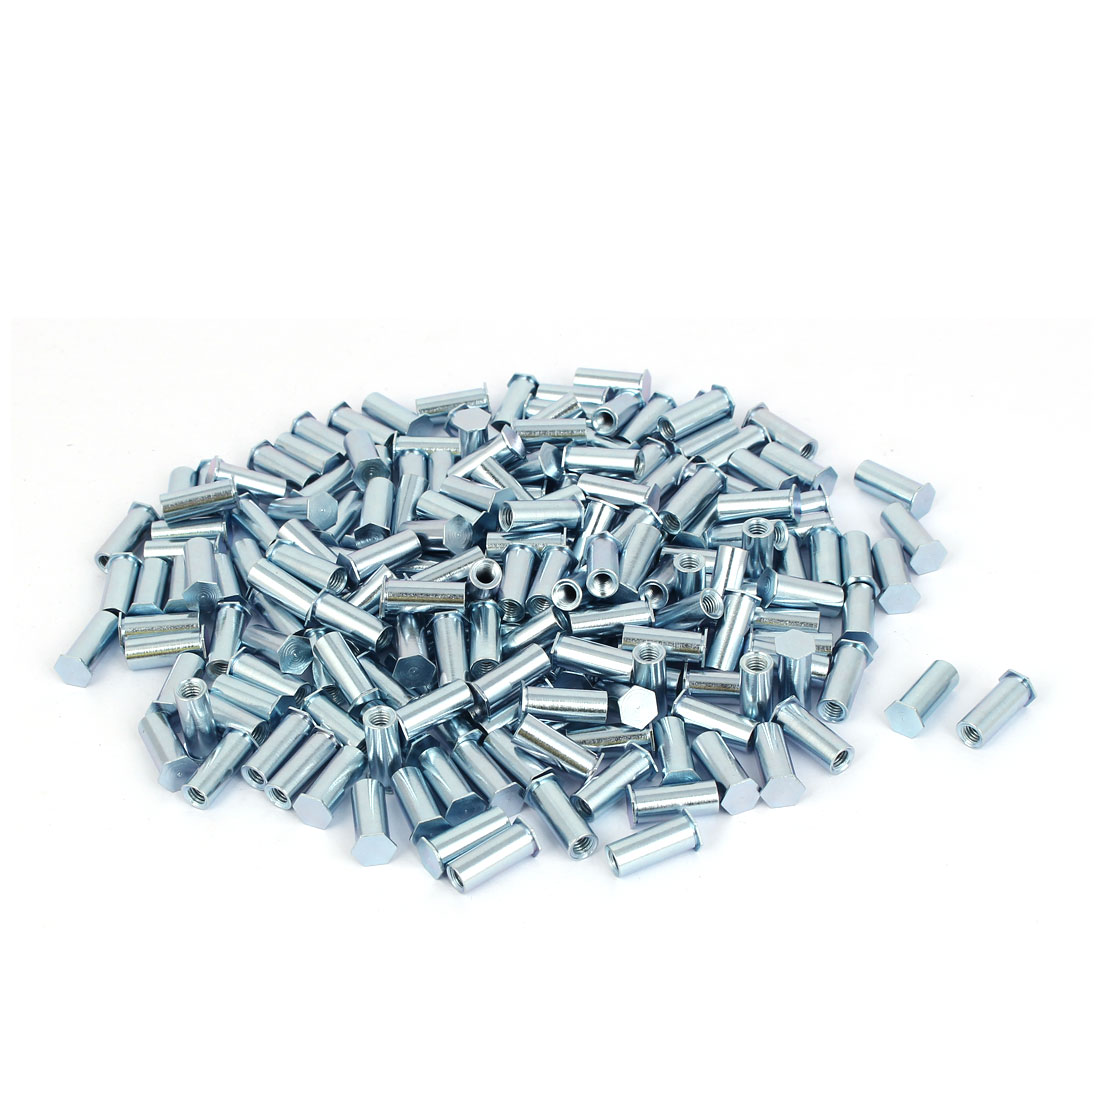 Carbon Steel Zinc Plated Hex Head Full Thread Self Clinching Standoff Silver Tone M4x15mm 200pcs